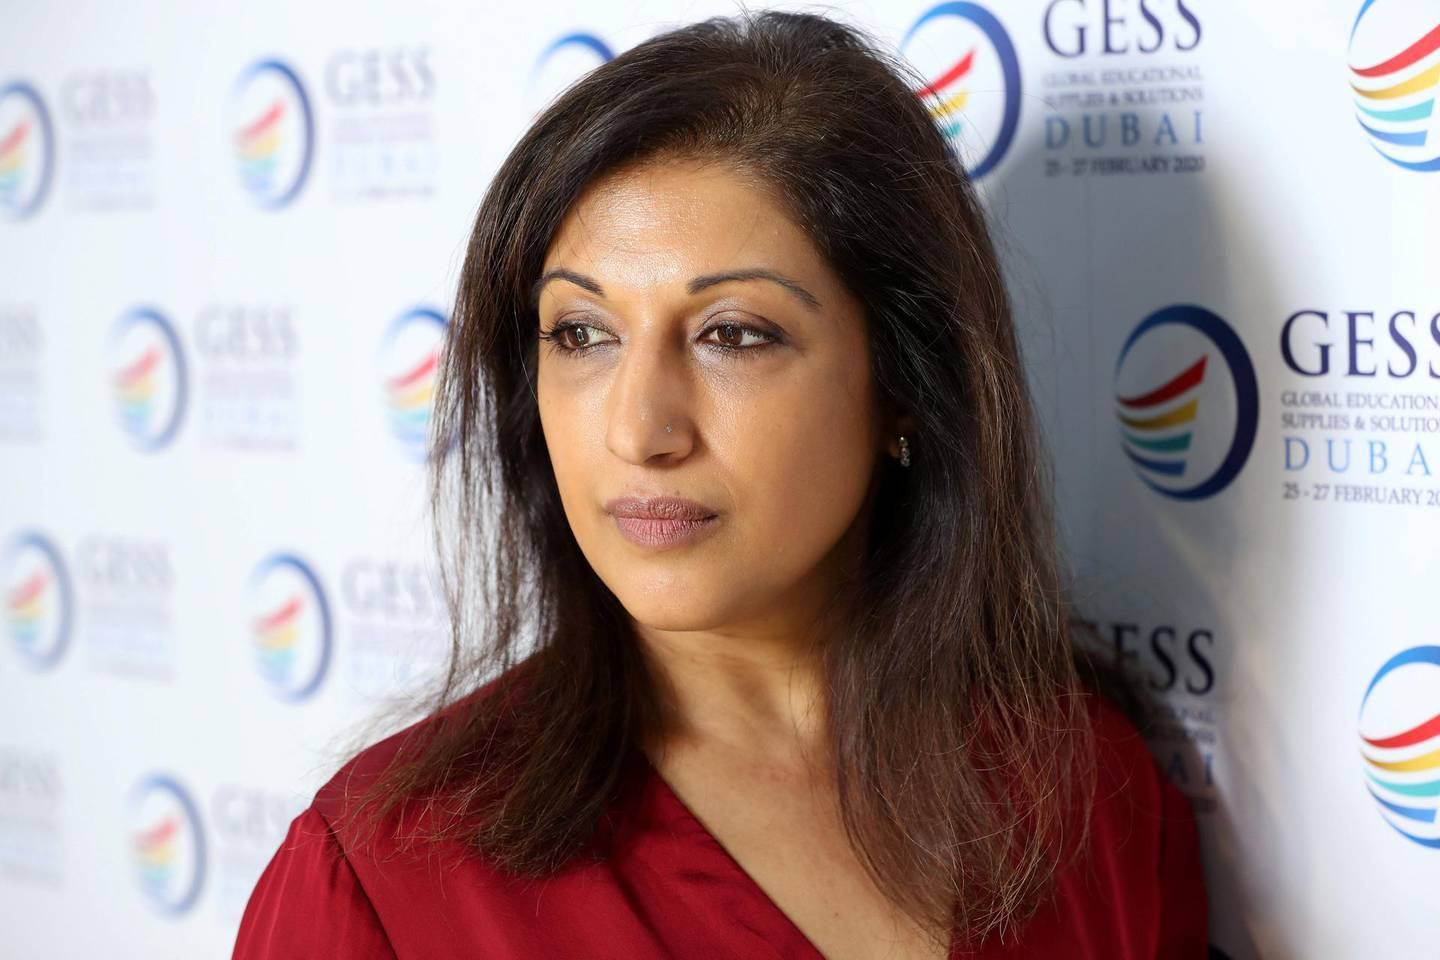 Dubai, United Arab Emirates - Reporter: Anam Rizvi: Tanya Dharamshi, Clinical Director at Priory speaks about 'Why are UAE Teachers at Risk of Increased Stress'. Thursday, February 27th, 2020. World Trade centre, Dubai. Chris Whiteoak / The National